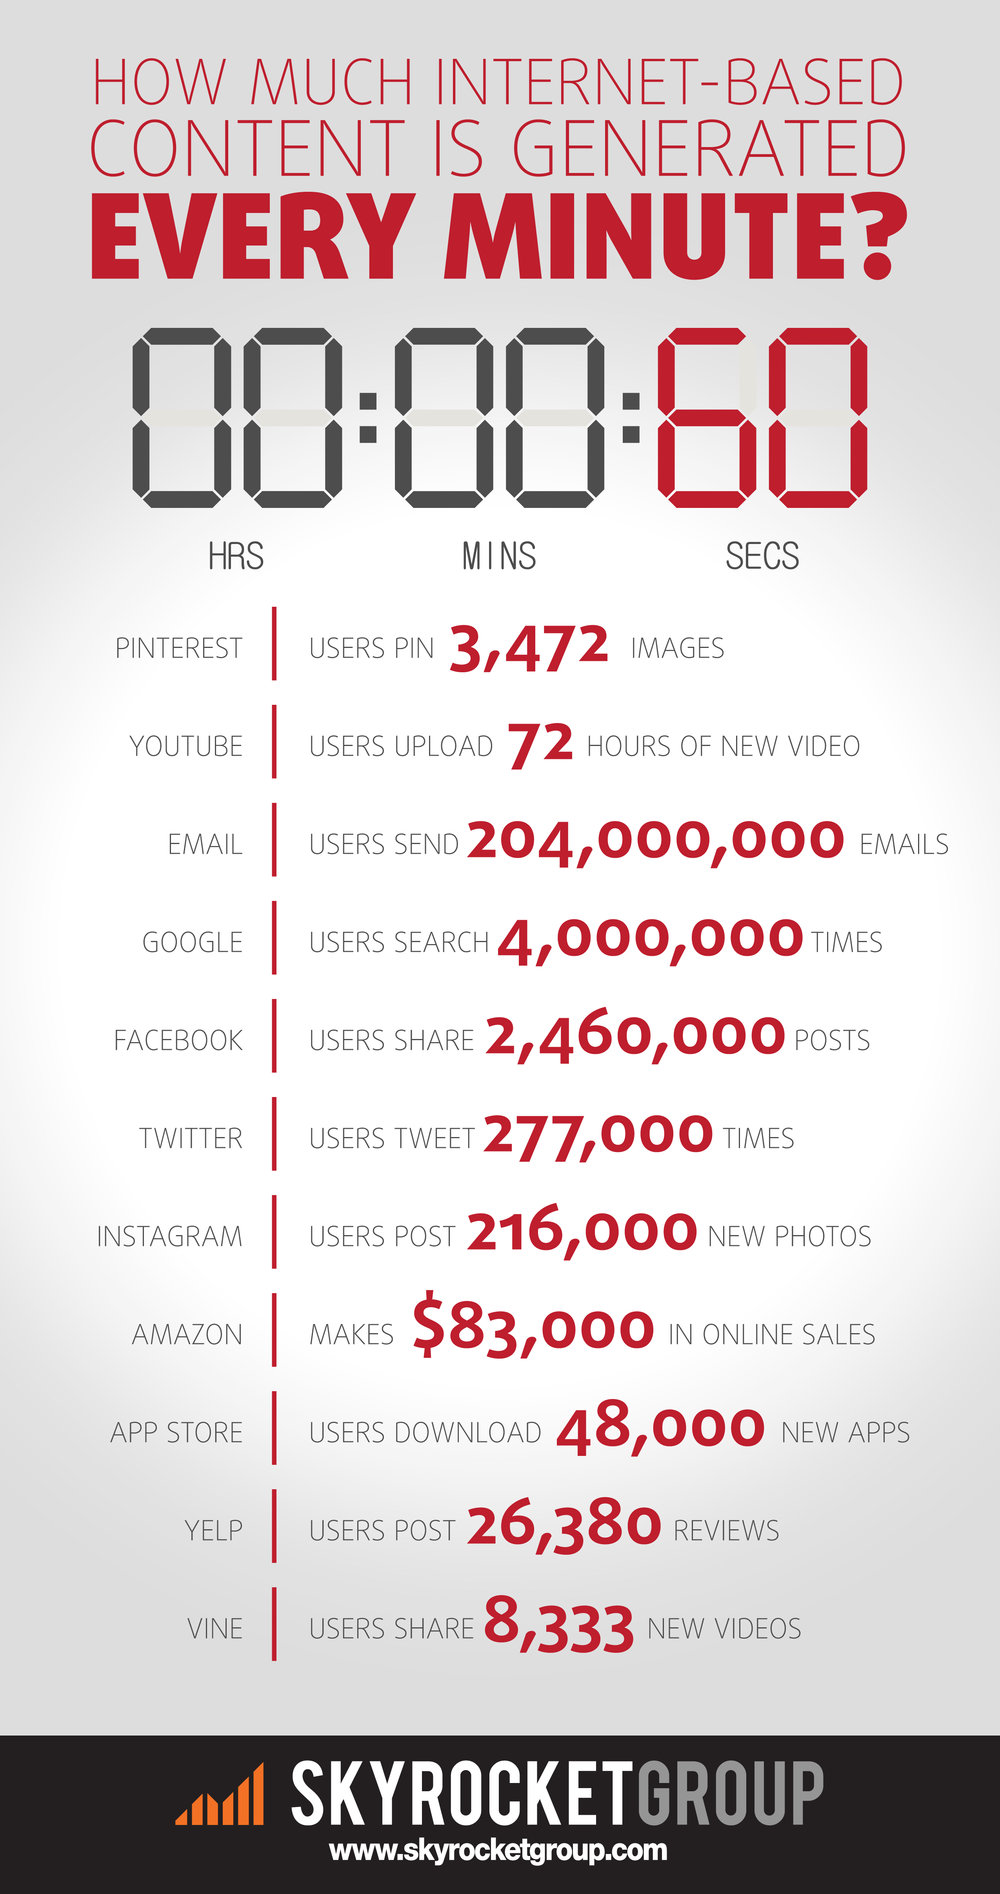 social media generated every minute